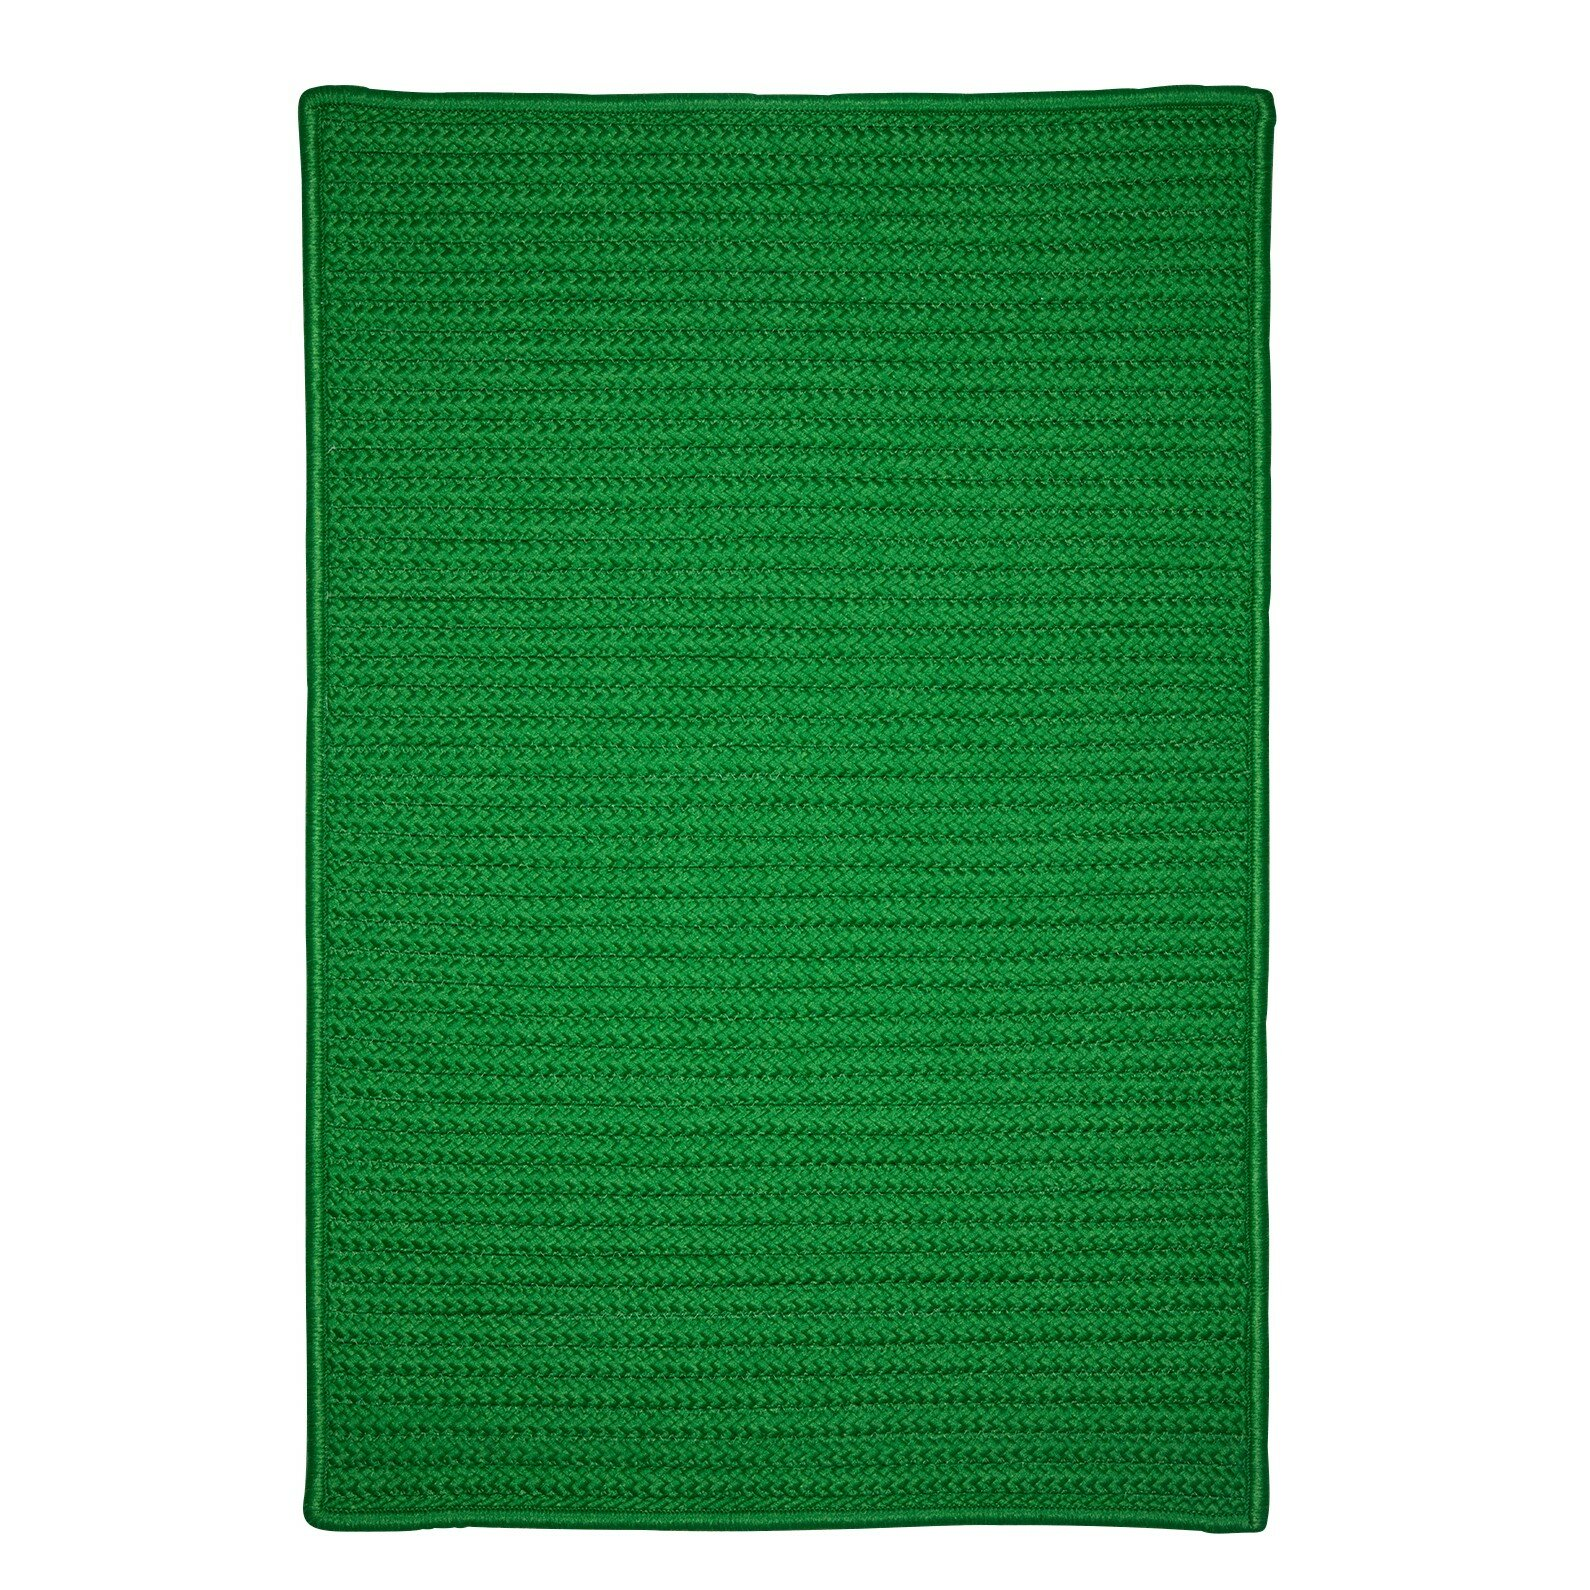 Charlton home glasgow green indoor outdoor area rug for Indoor outdoor carpet green